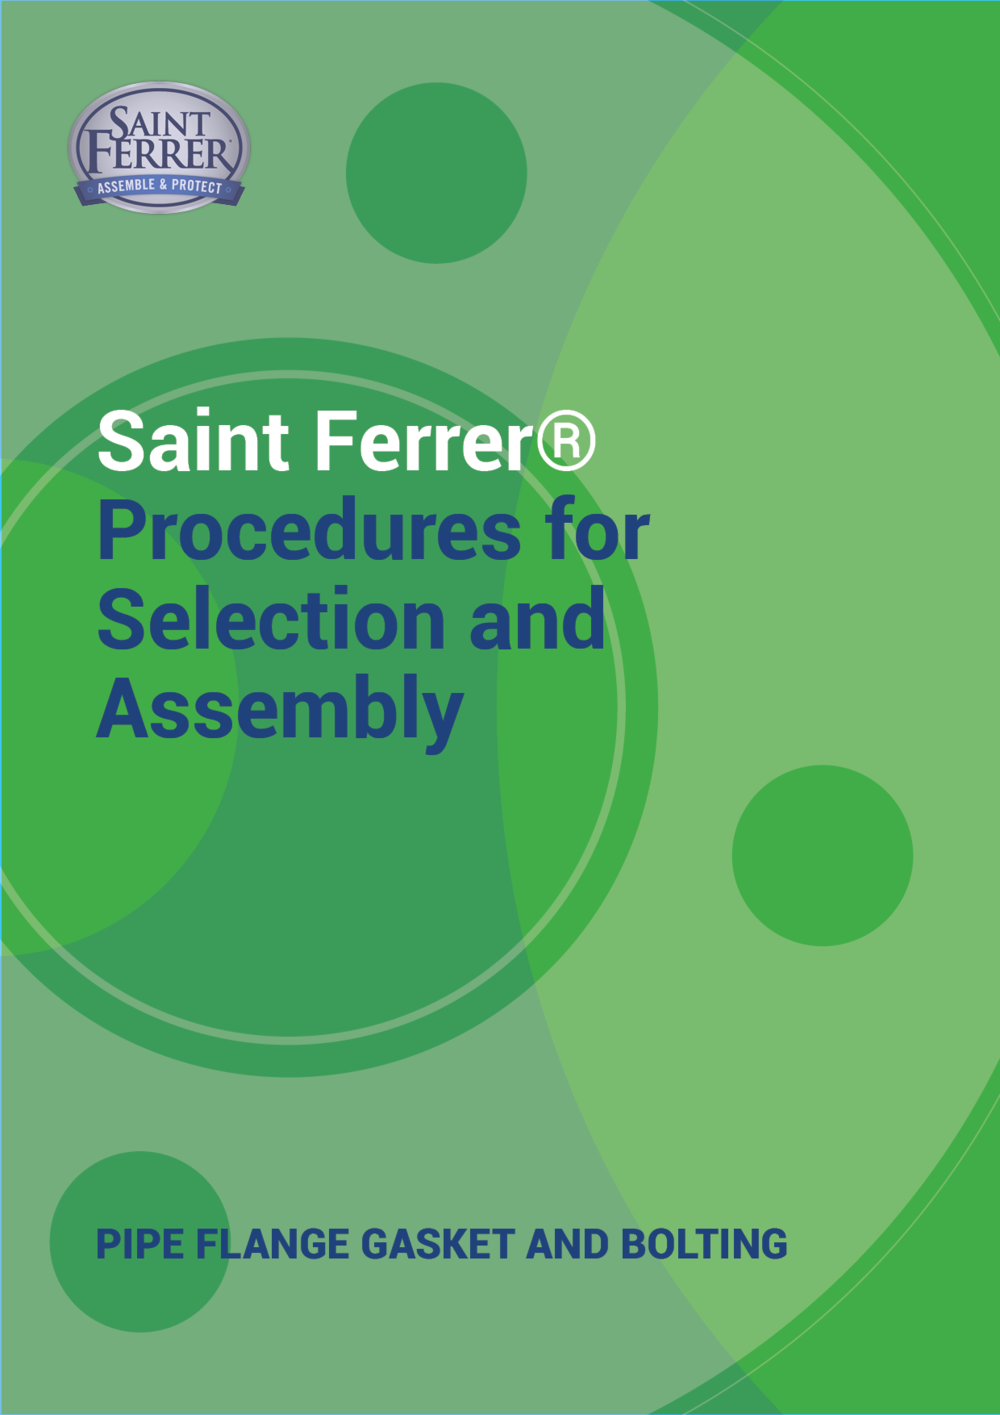 Procedures and Assembly.png